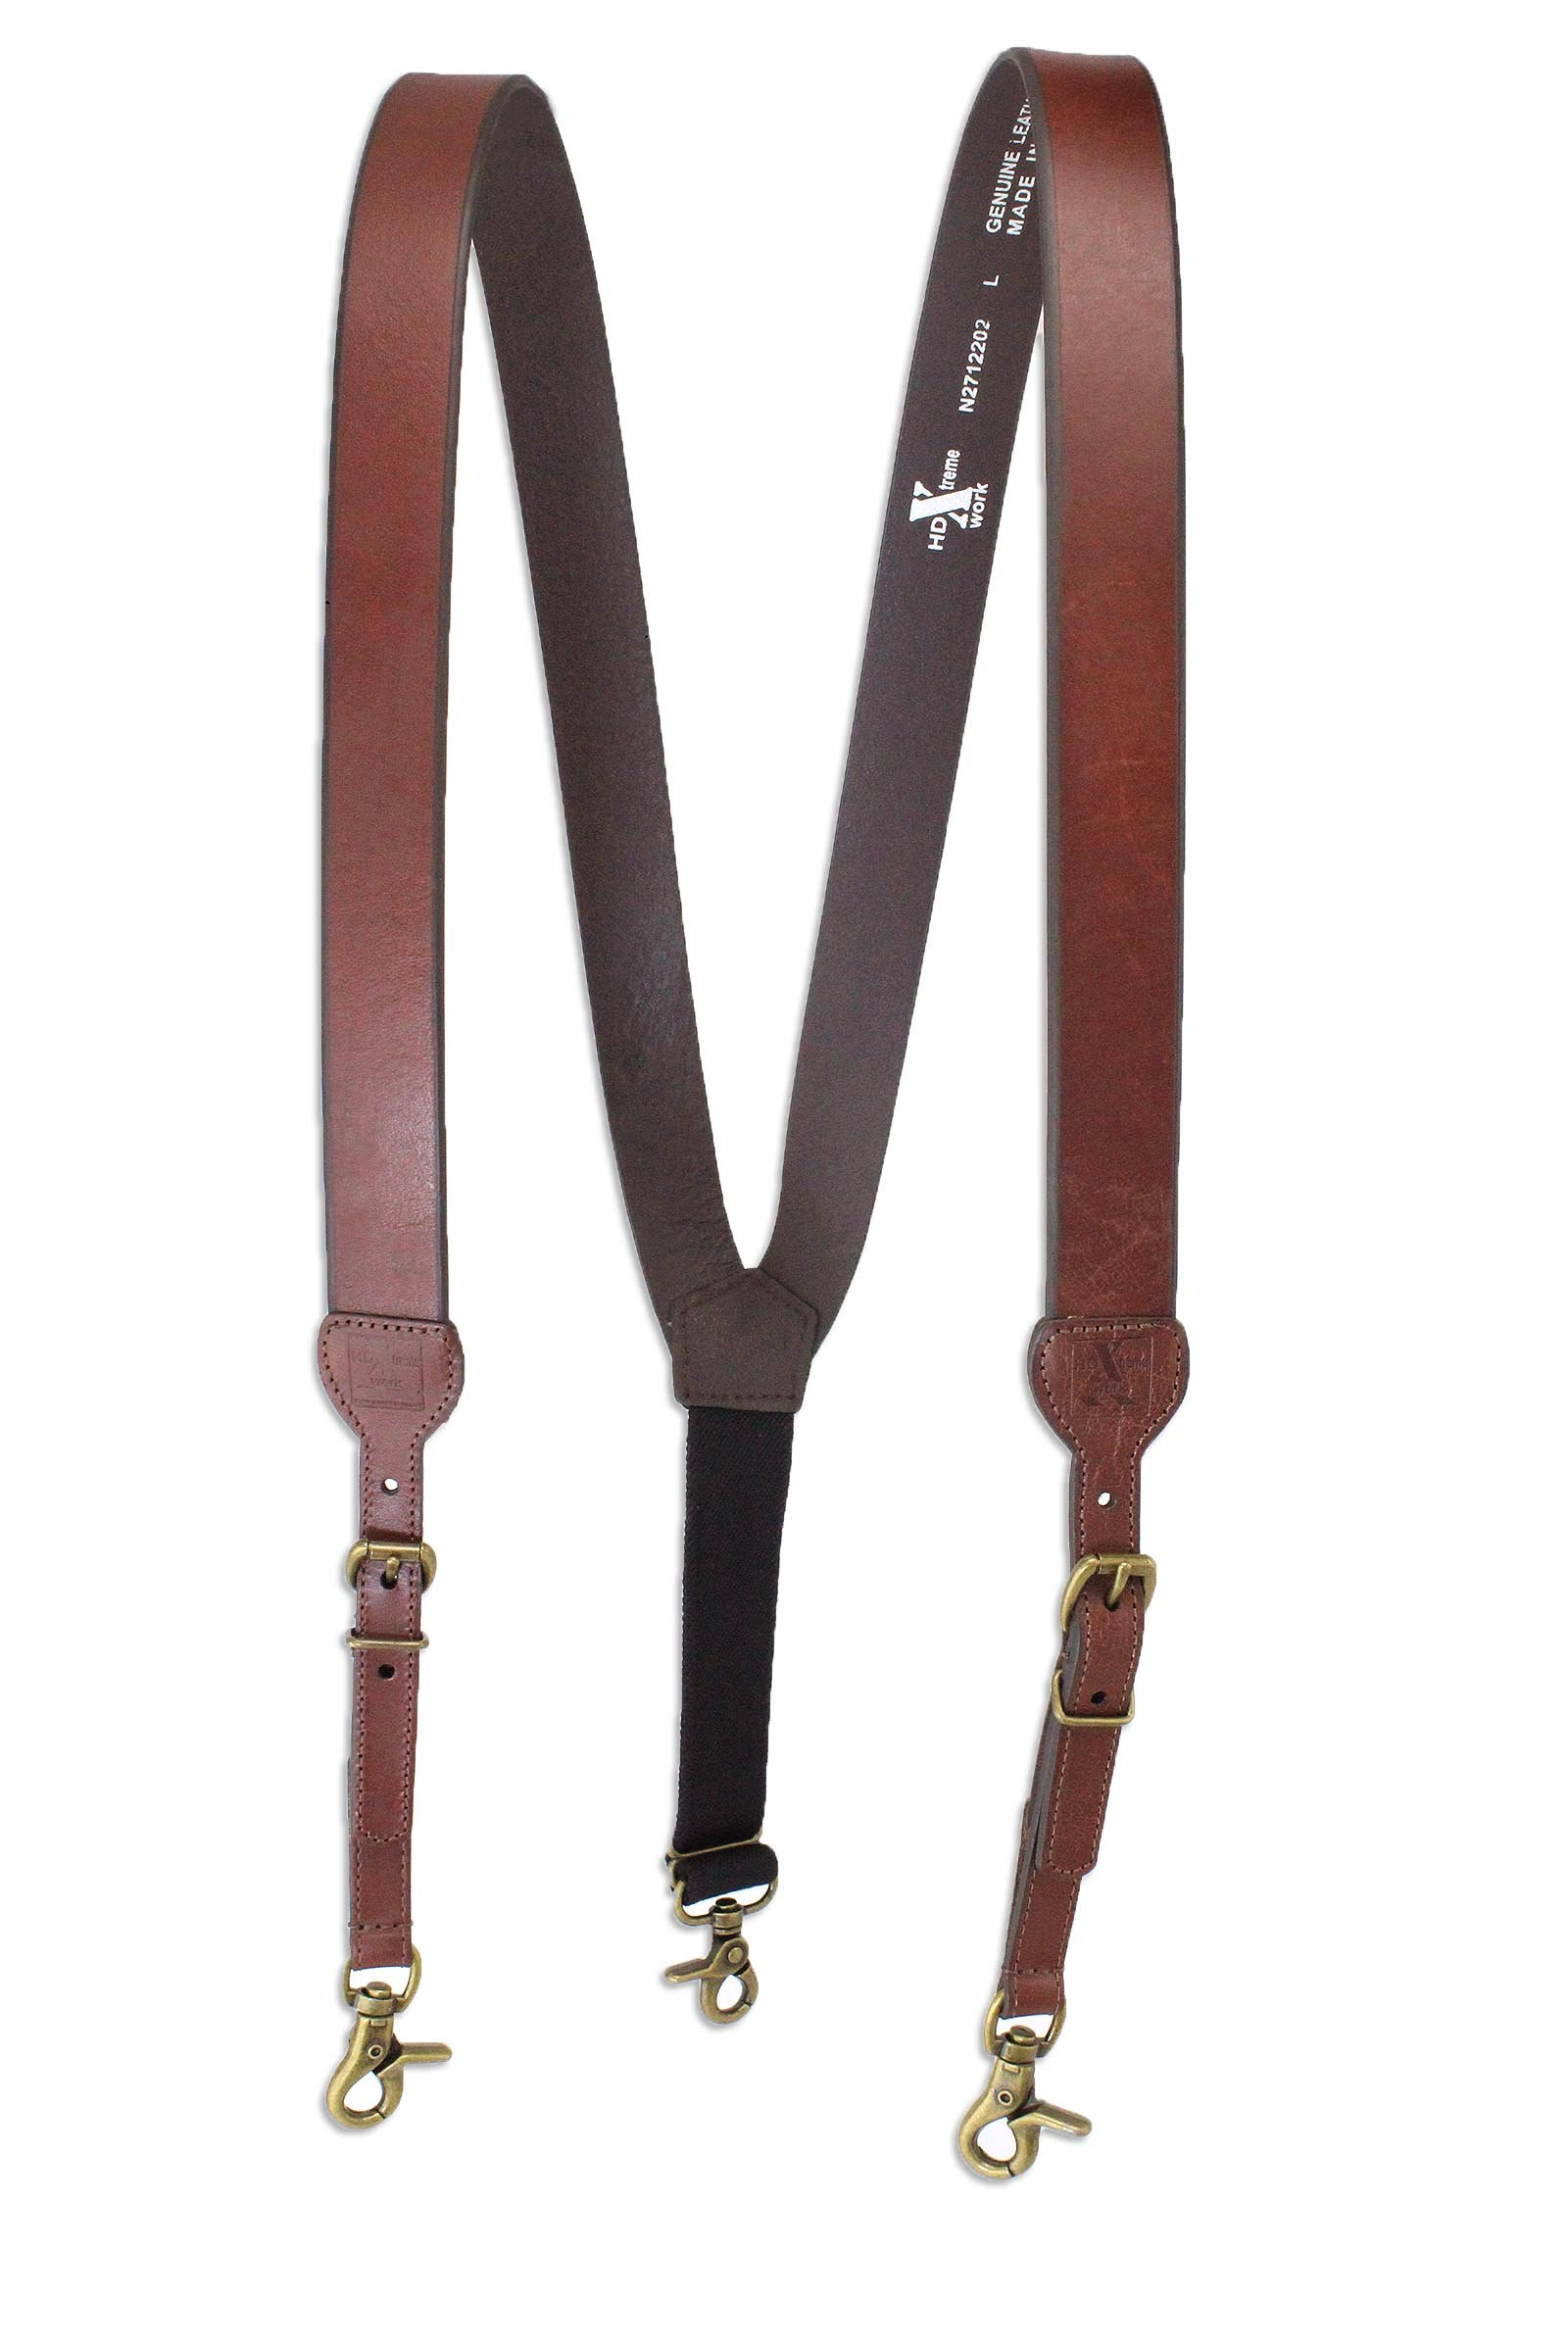 M & F Western Men's Nocona Hdx Smooth Leather Suspenders (X-Large, Brown)